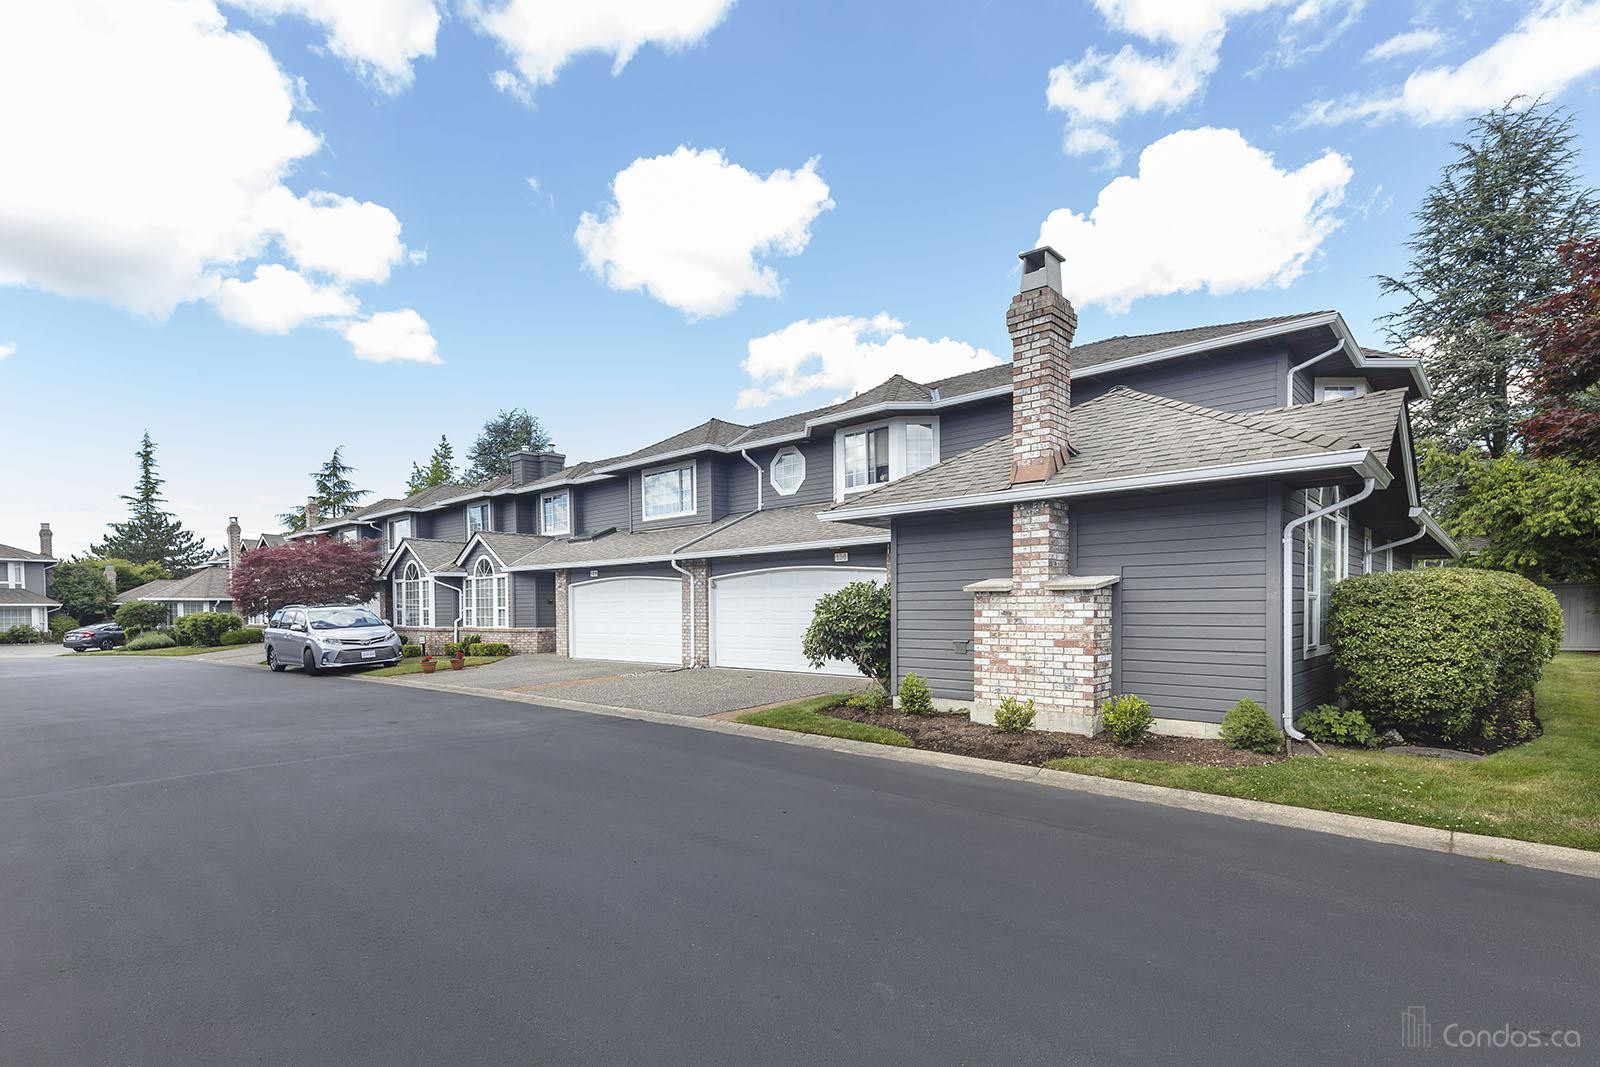 Lakewood Gardens at 6109 Boundary Dr W, Surrey 1